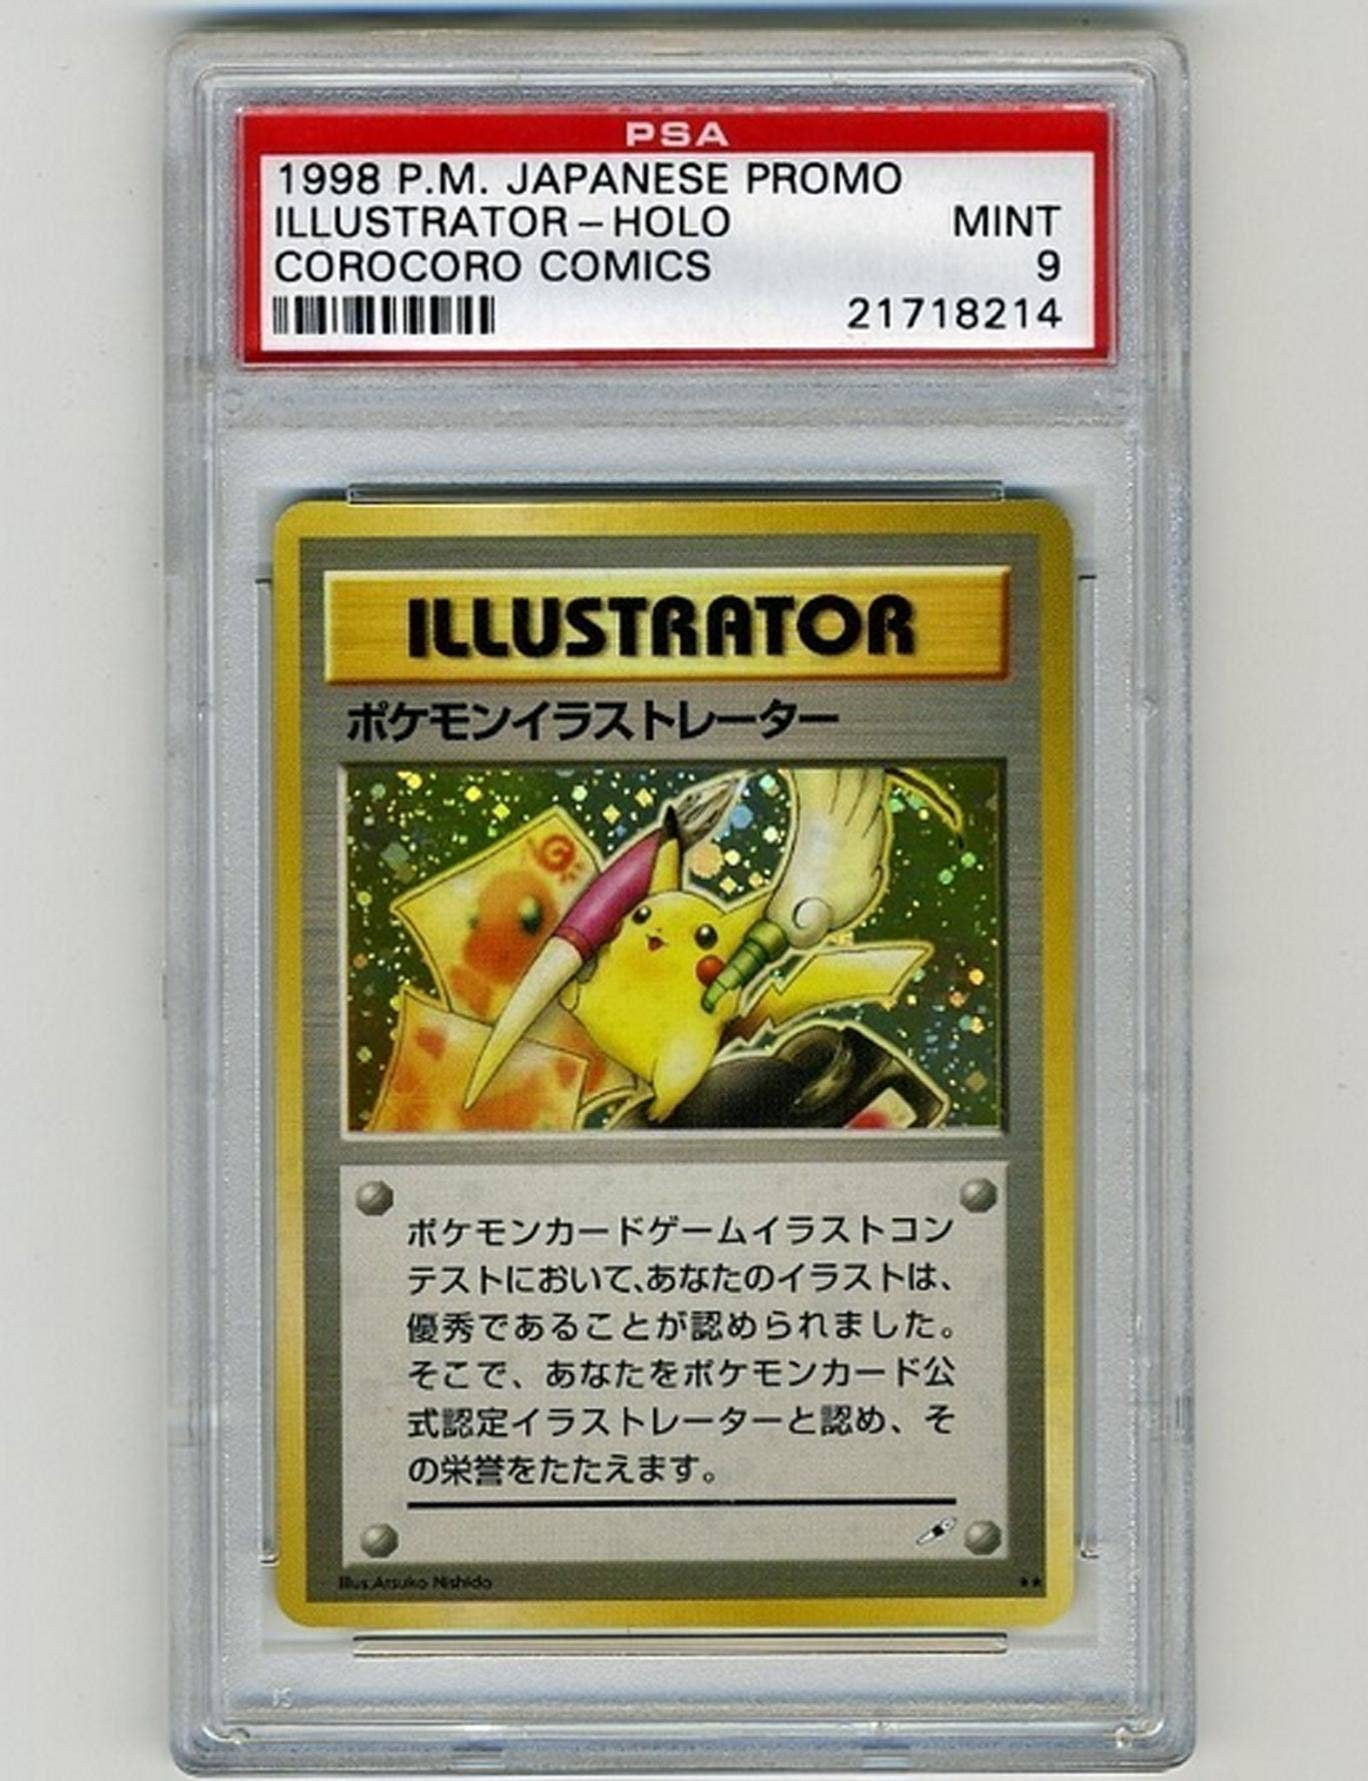 The Pikachu illustrator card is selling for $100,000